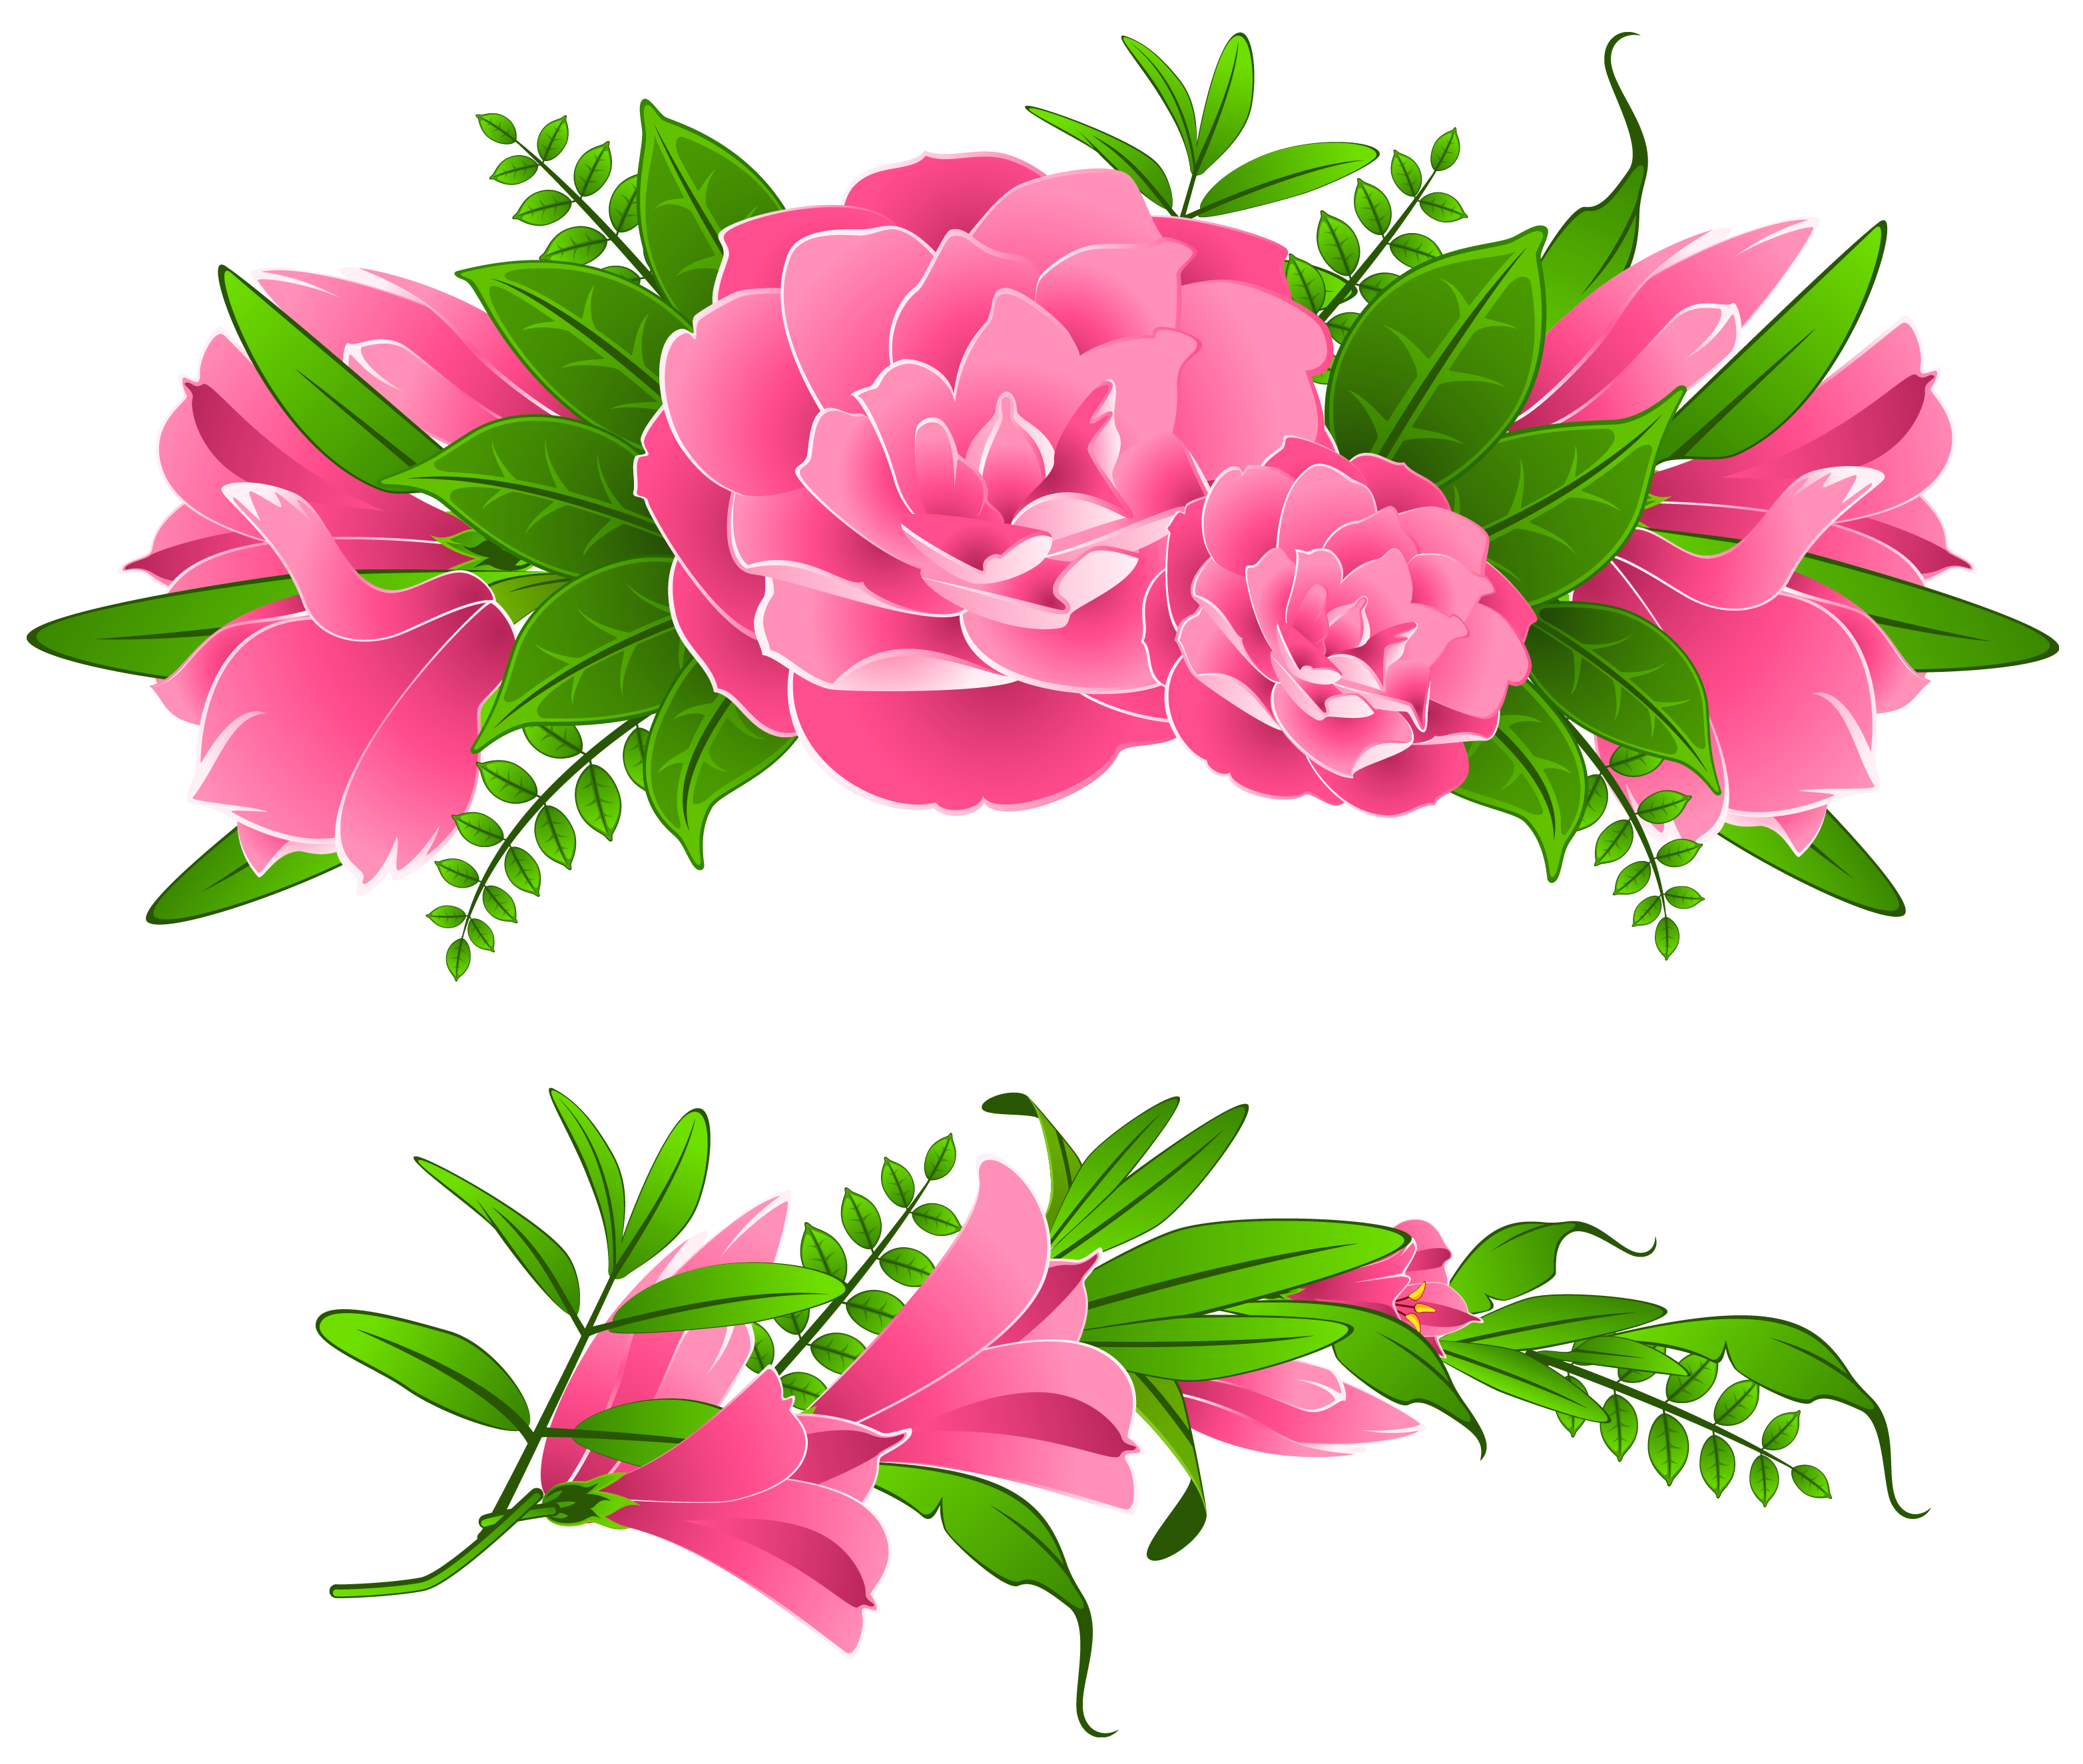 free clip art flowers transparent png clipart images free - HD3128×2649